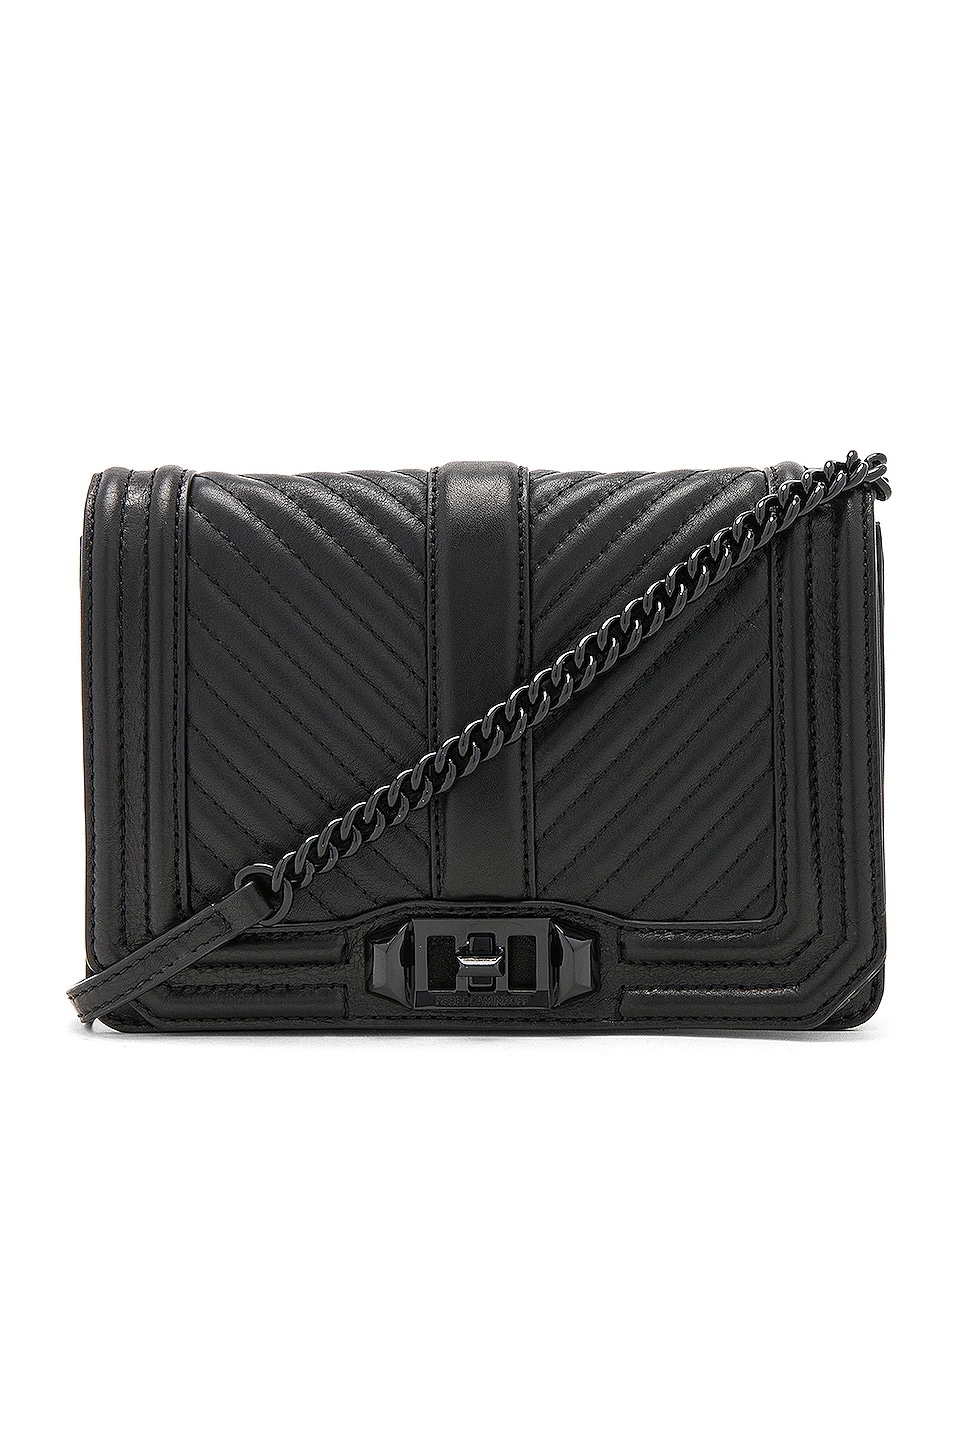 Rebecca Minkoff Chevron Quilted Small Love Crossbody Bag in Black